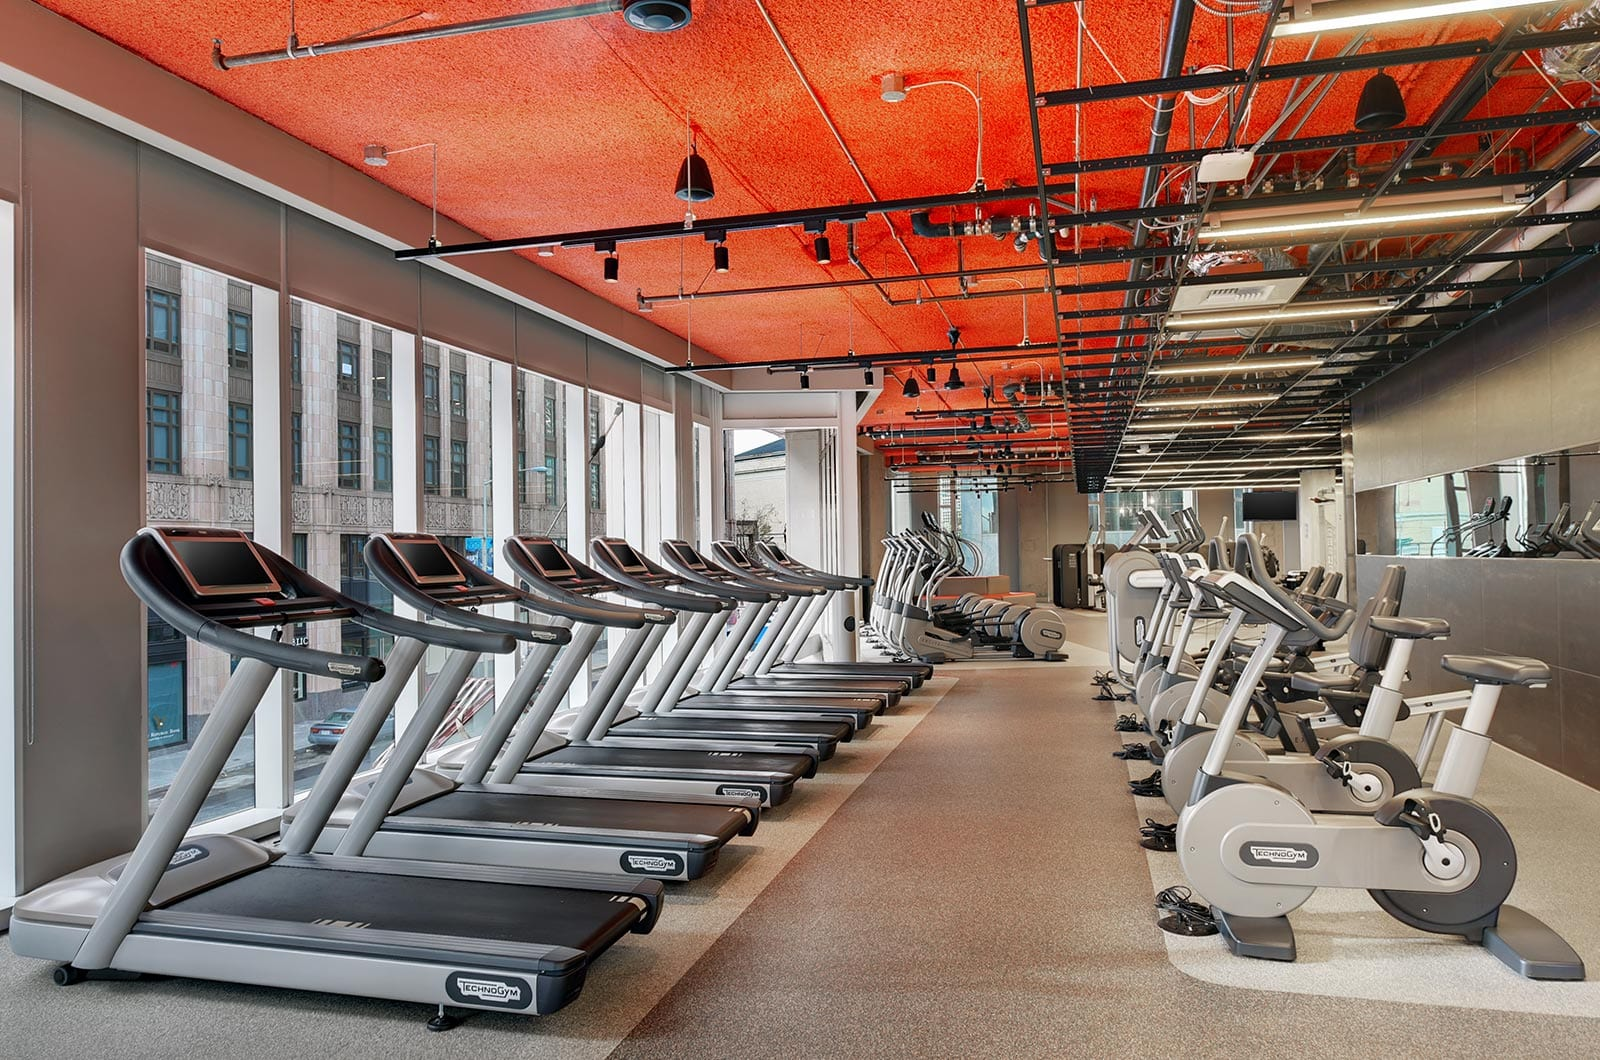 Fitness Center Virtual Tour Services | Fitness Center Virtual Tour Provider | Gym Virtual Tour Provider